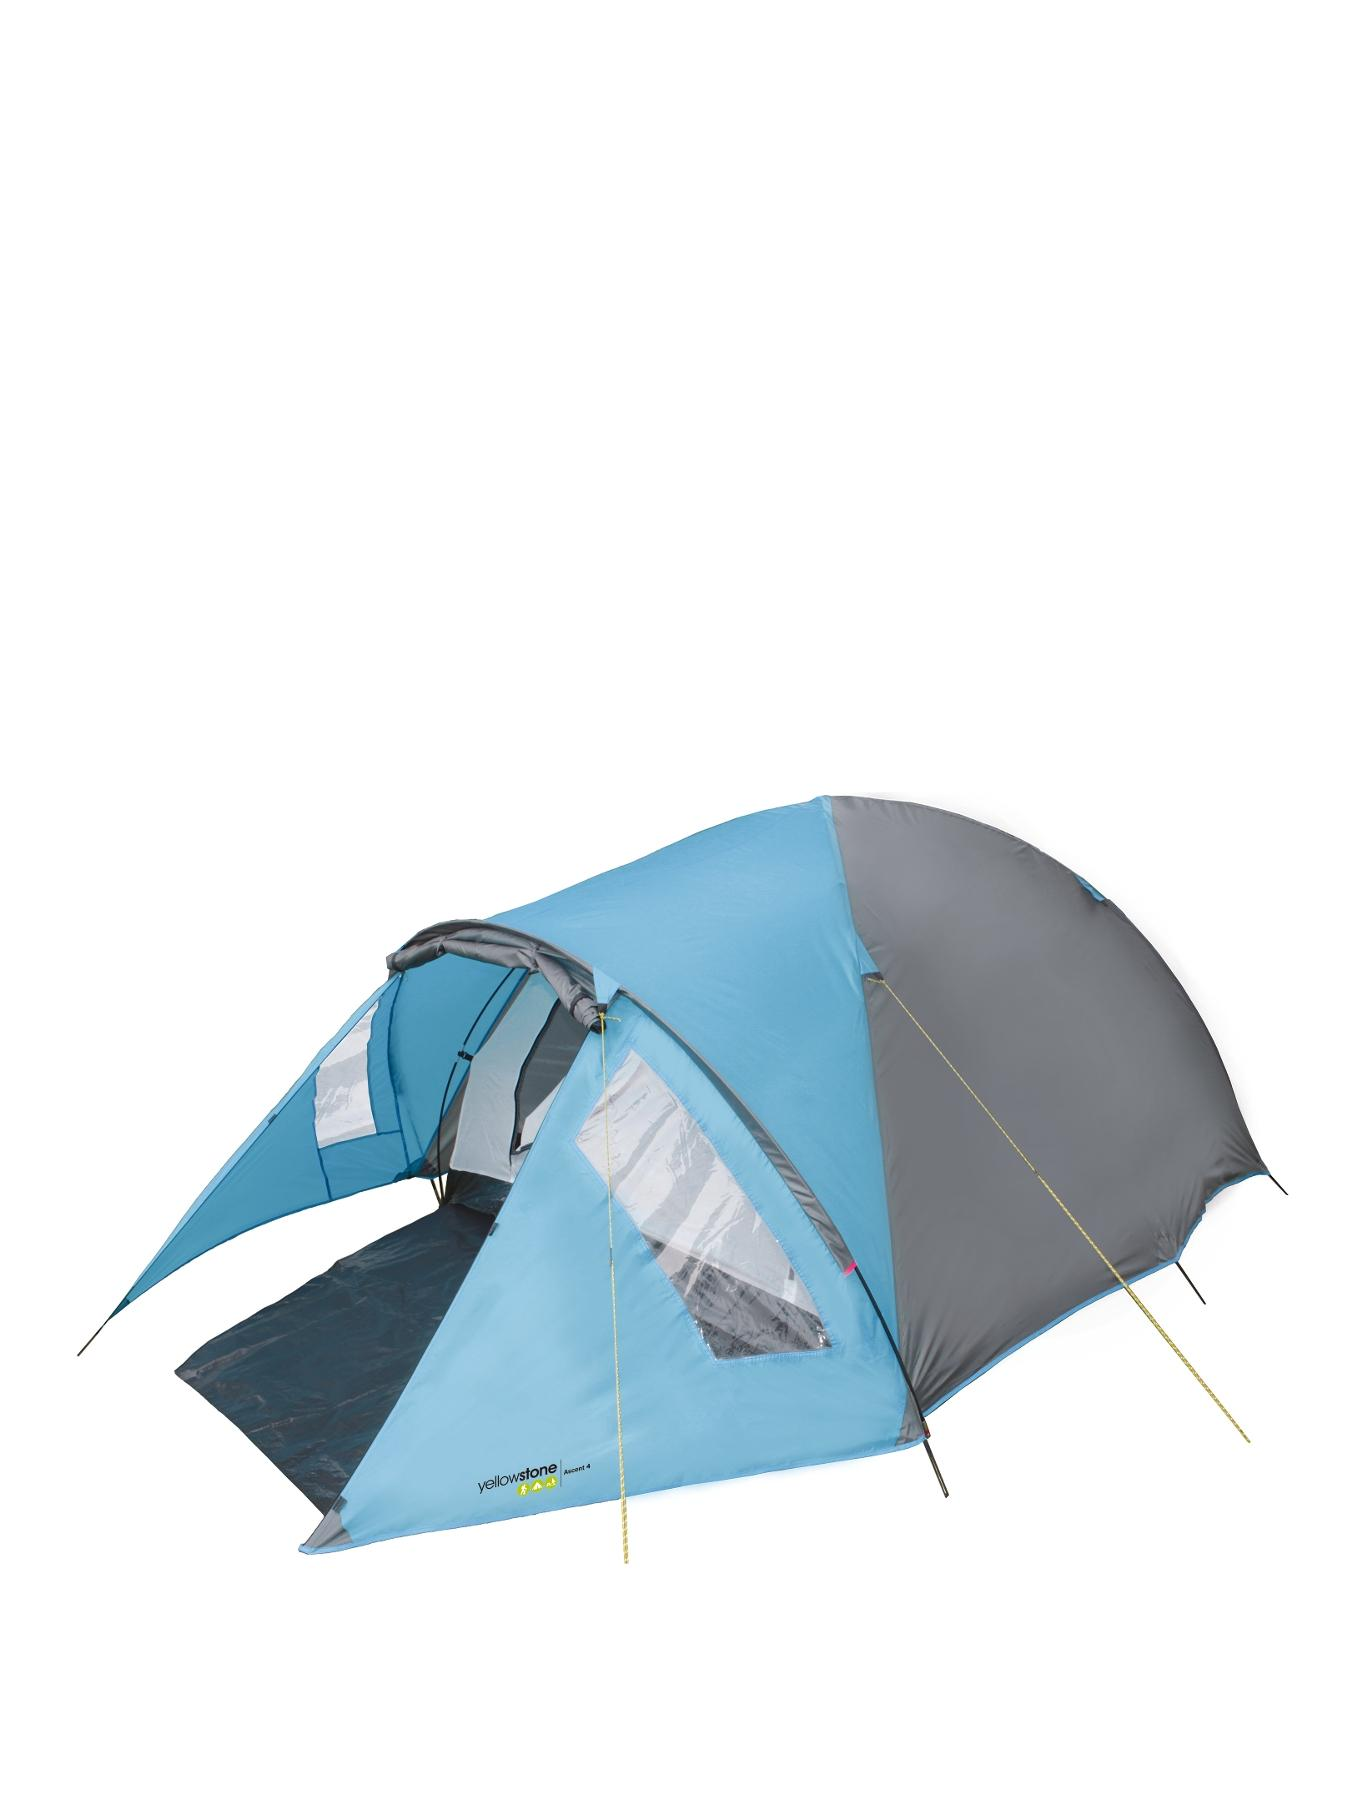 Ascent 4-Person Tent - Blue